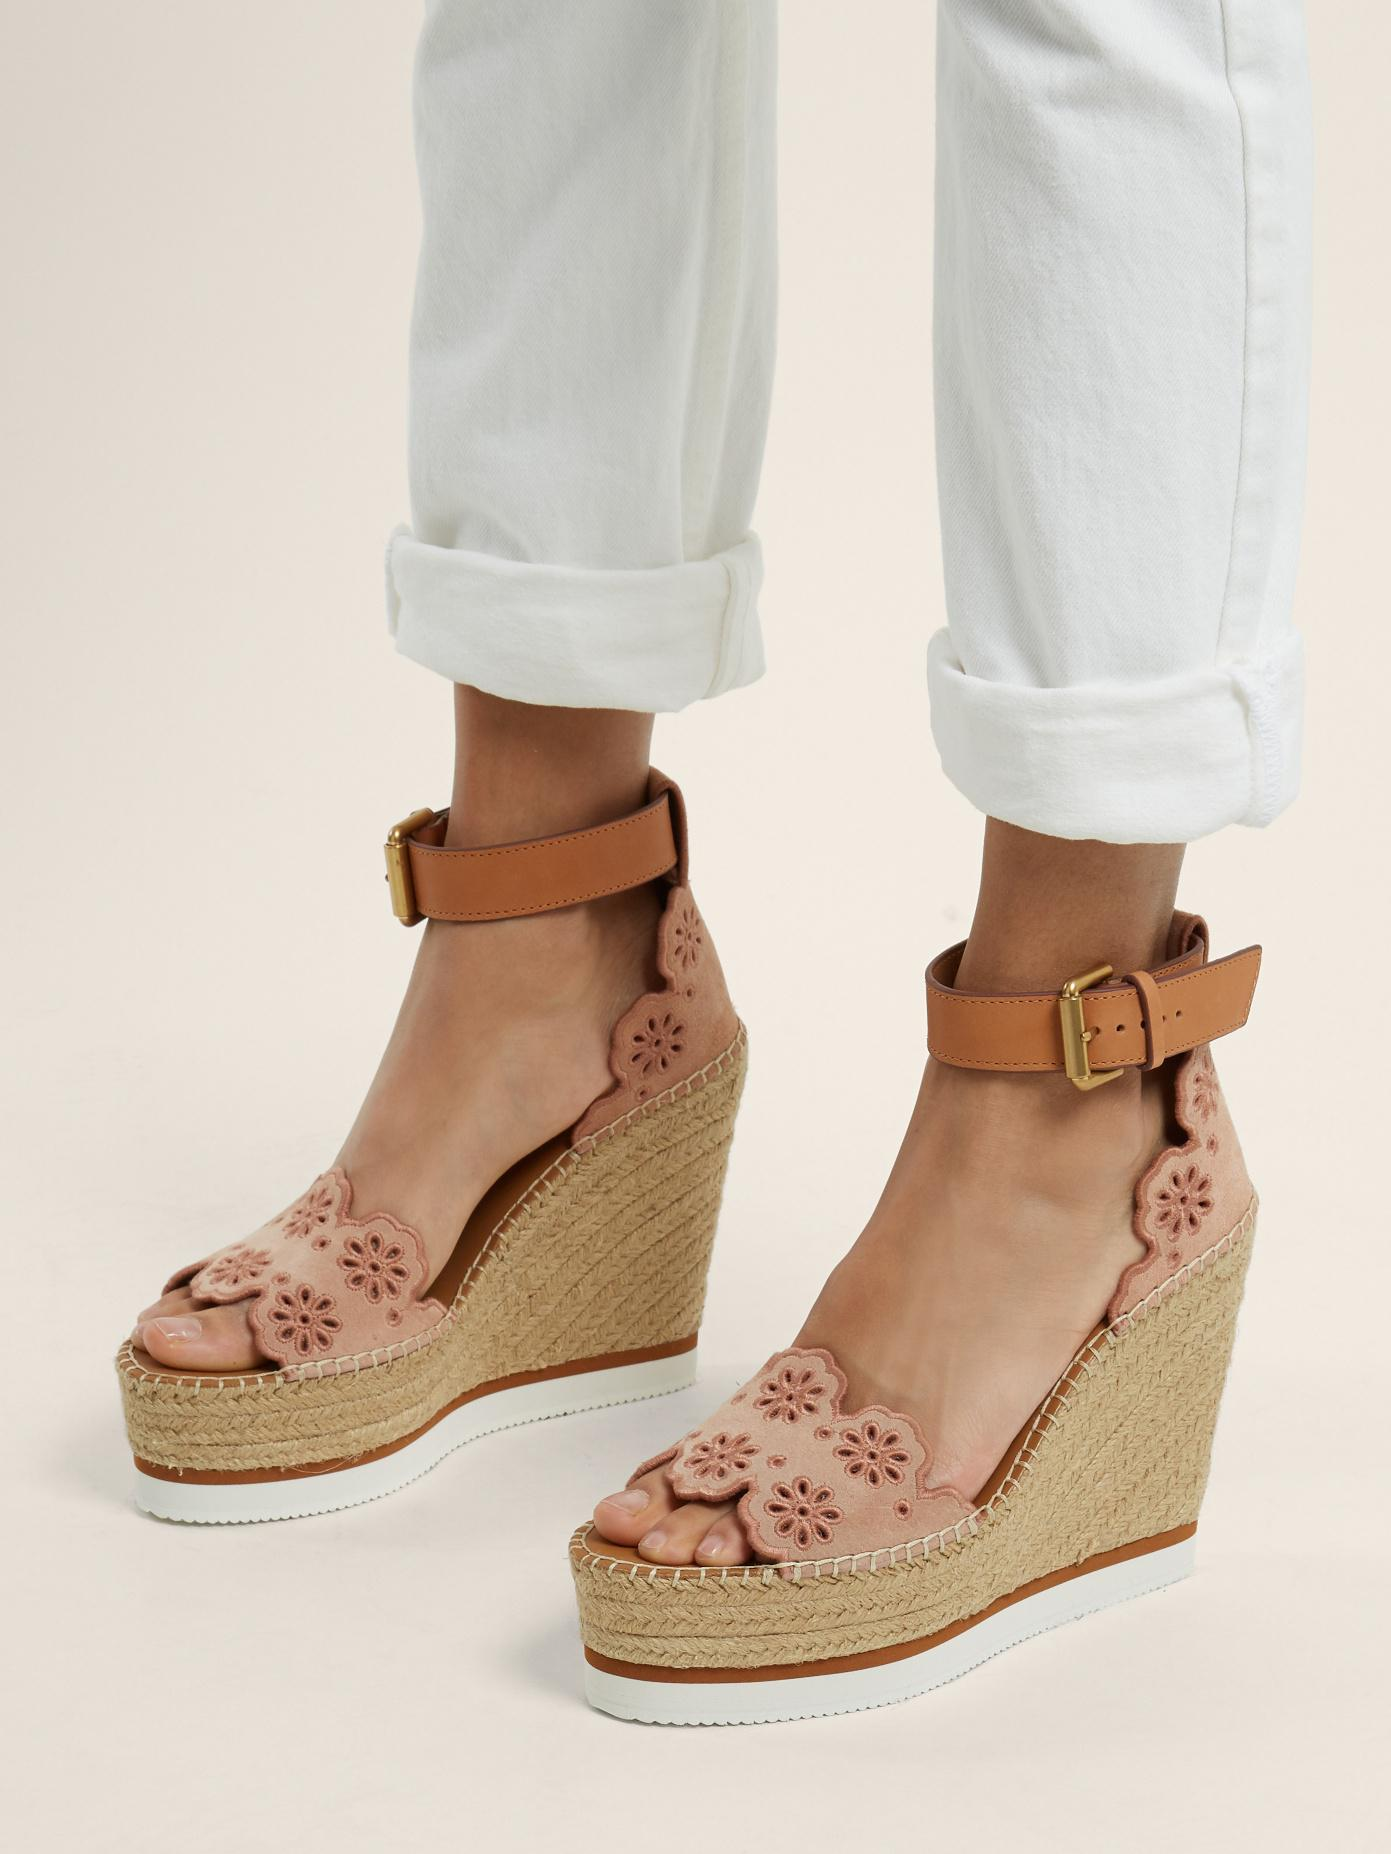 f7f24e6e7d1 See By Chloé Natural Flower Laser-cut Suede Wedge Espadrilles